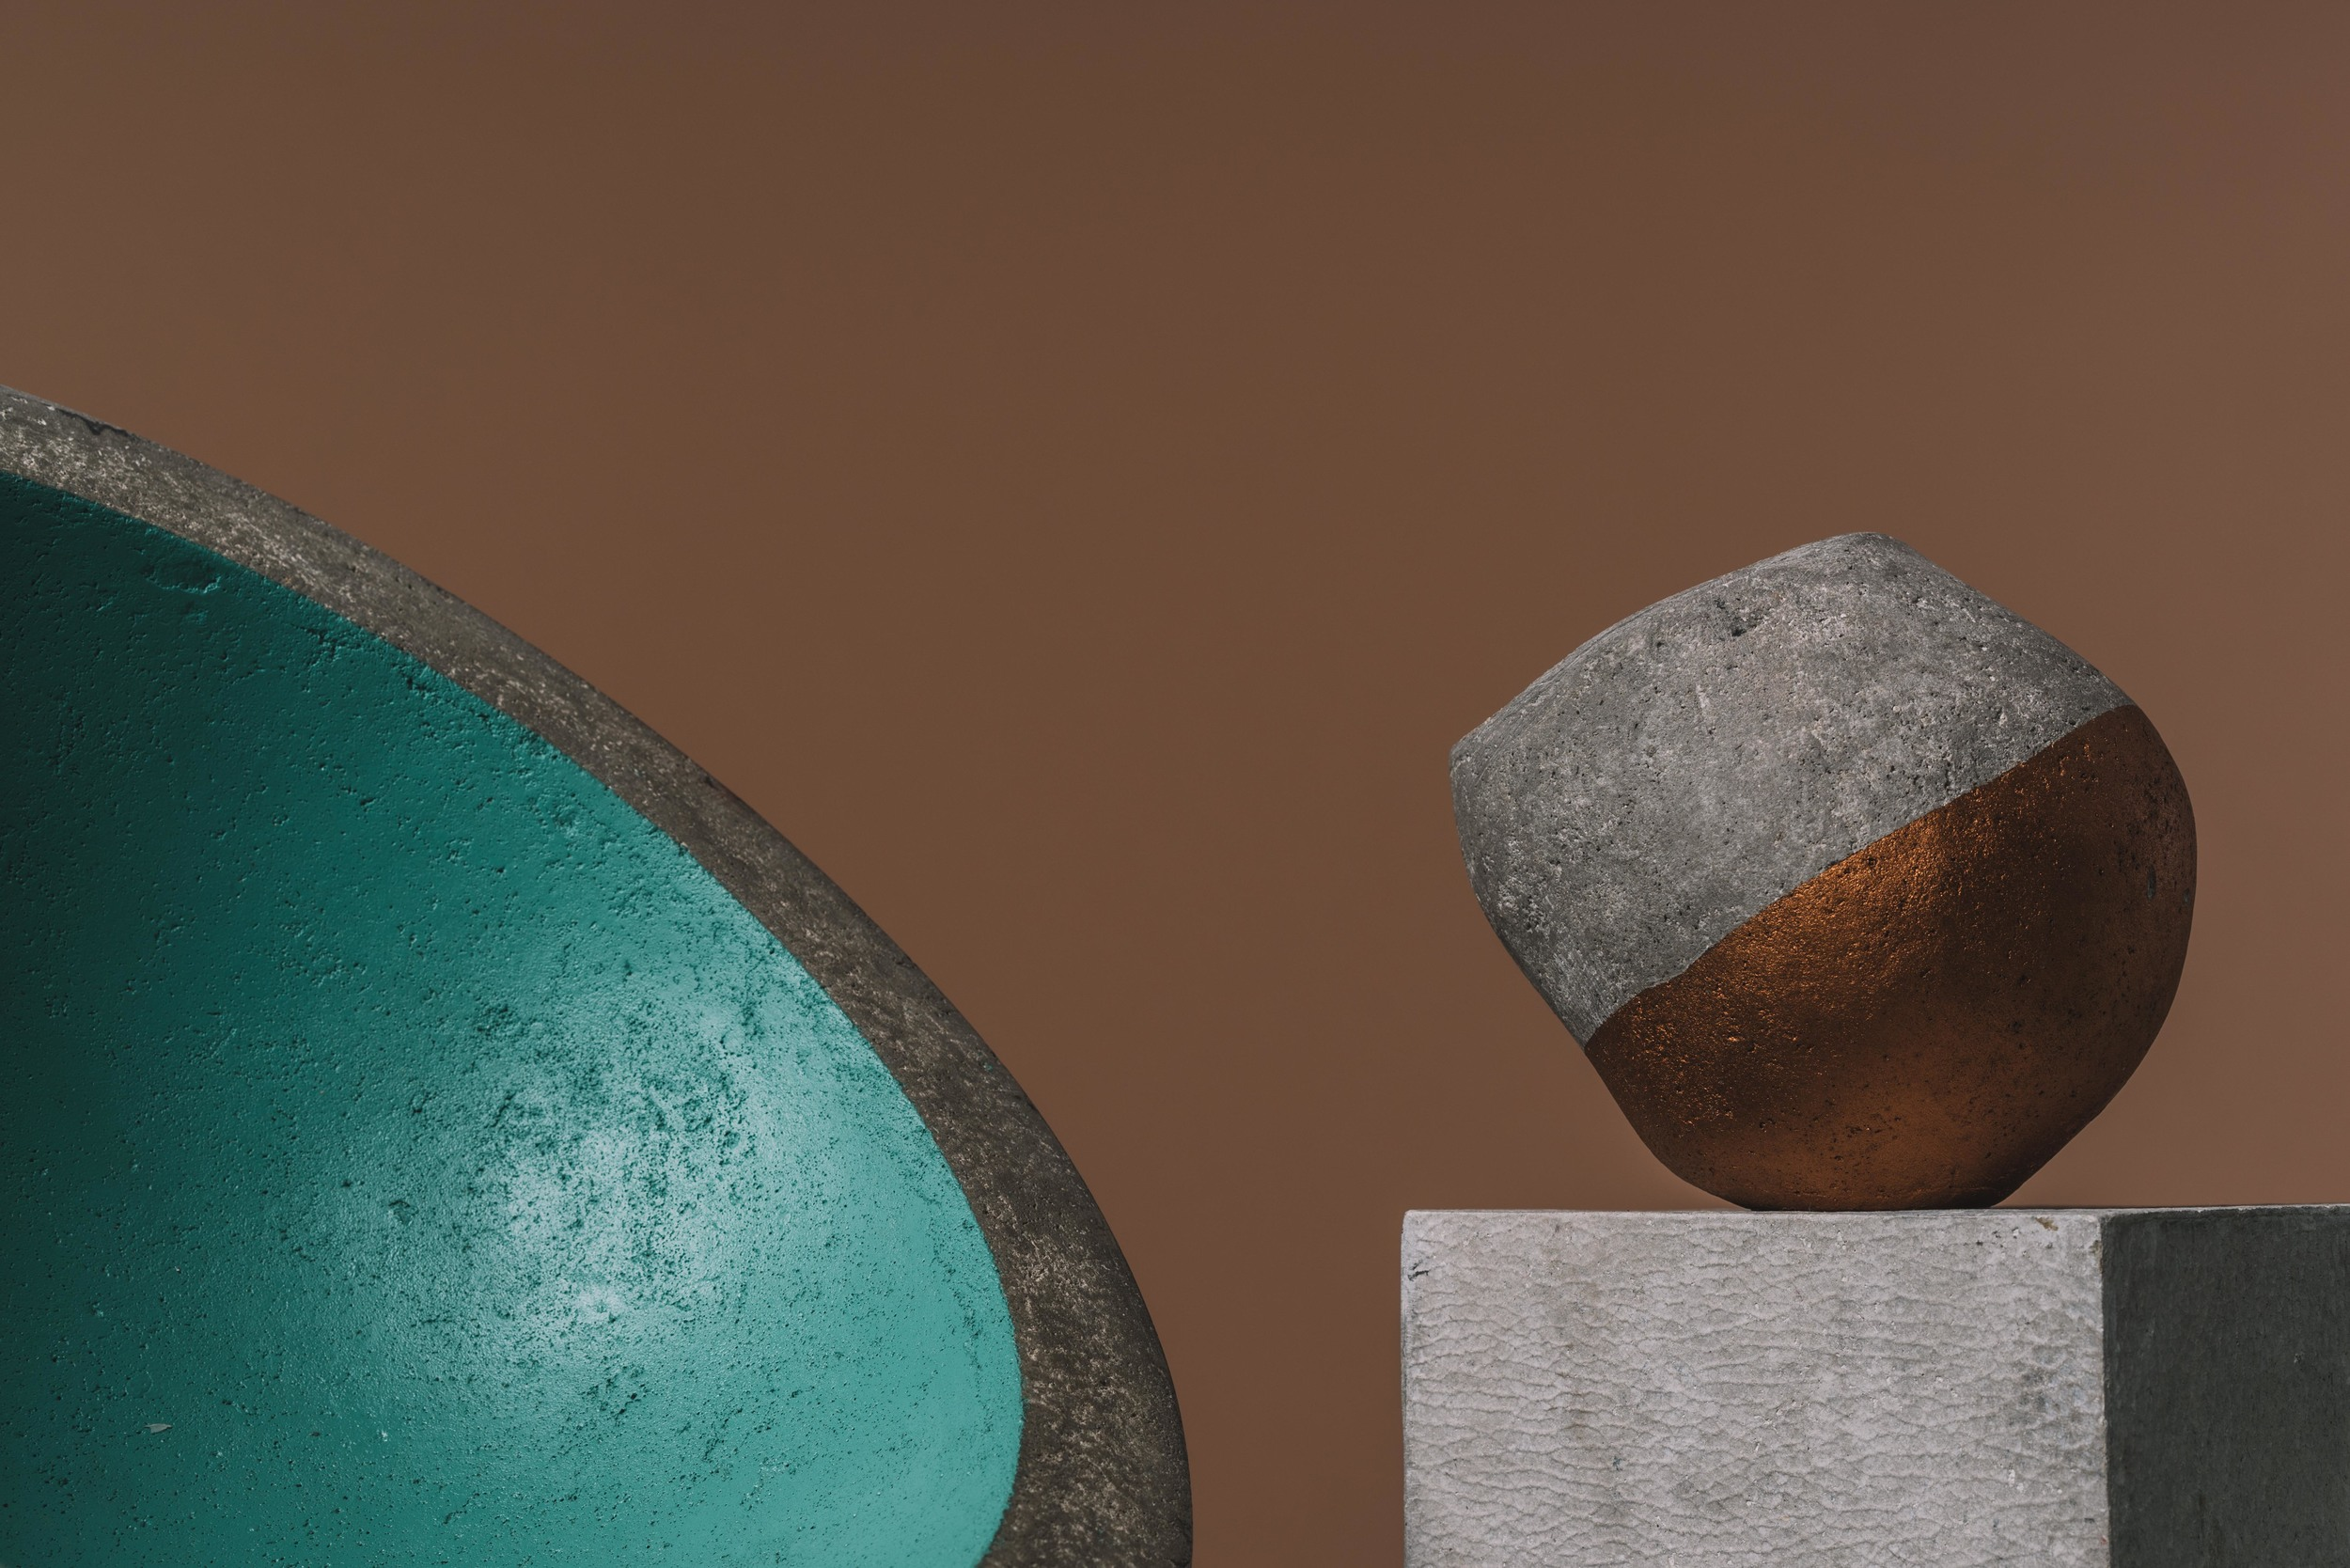 Finishes: From raw to finished textures